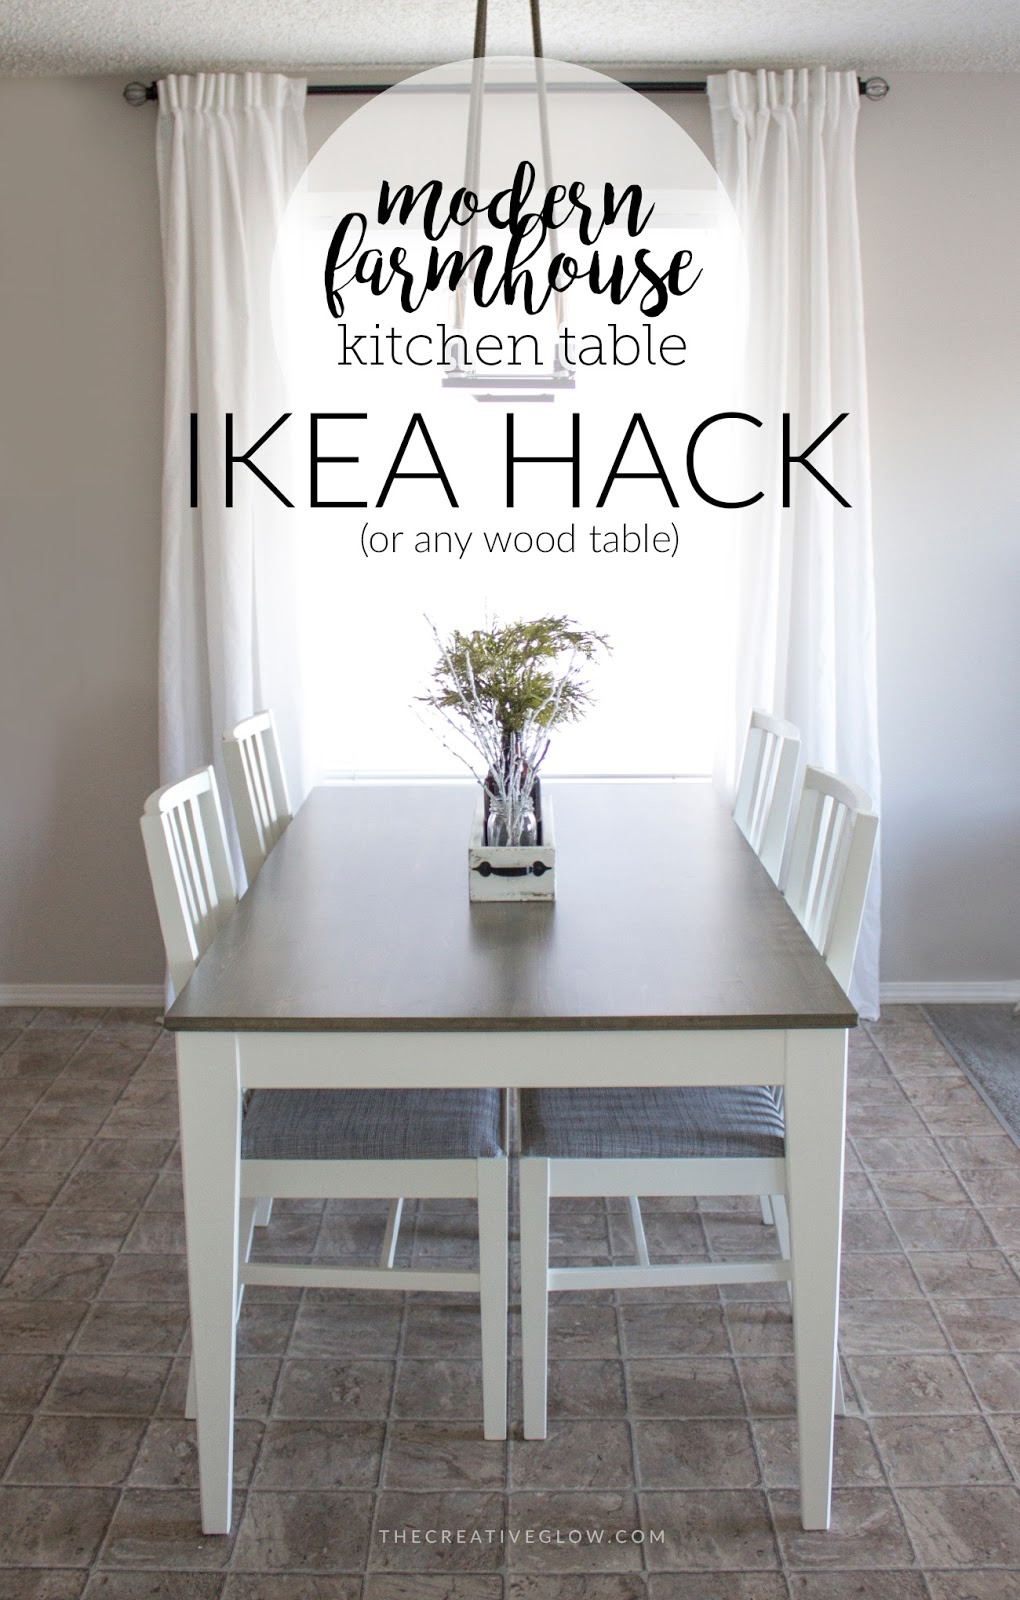 My Modern Farmhouse Kitchen Table Ikea Hack Or Not The Creative Glow My Modern Farmhouse Kitchen Table Ikea Hack Or Not